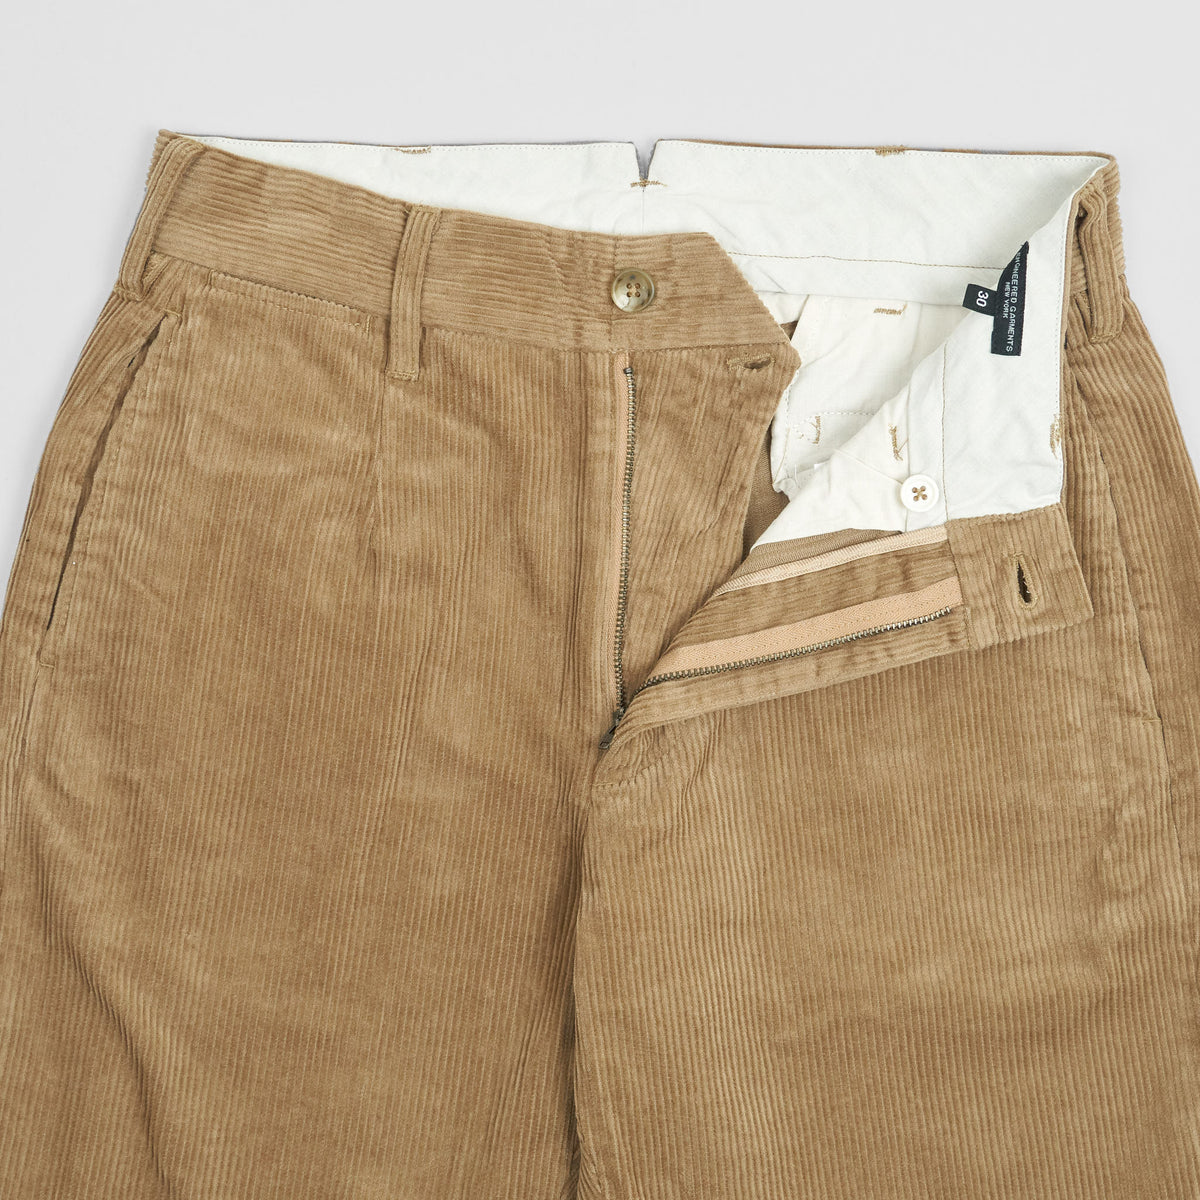 Engineered Garments Corduroy Relaxed Chino Pants